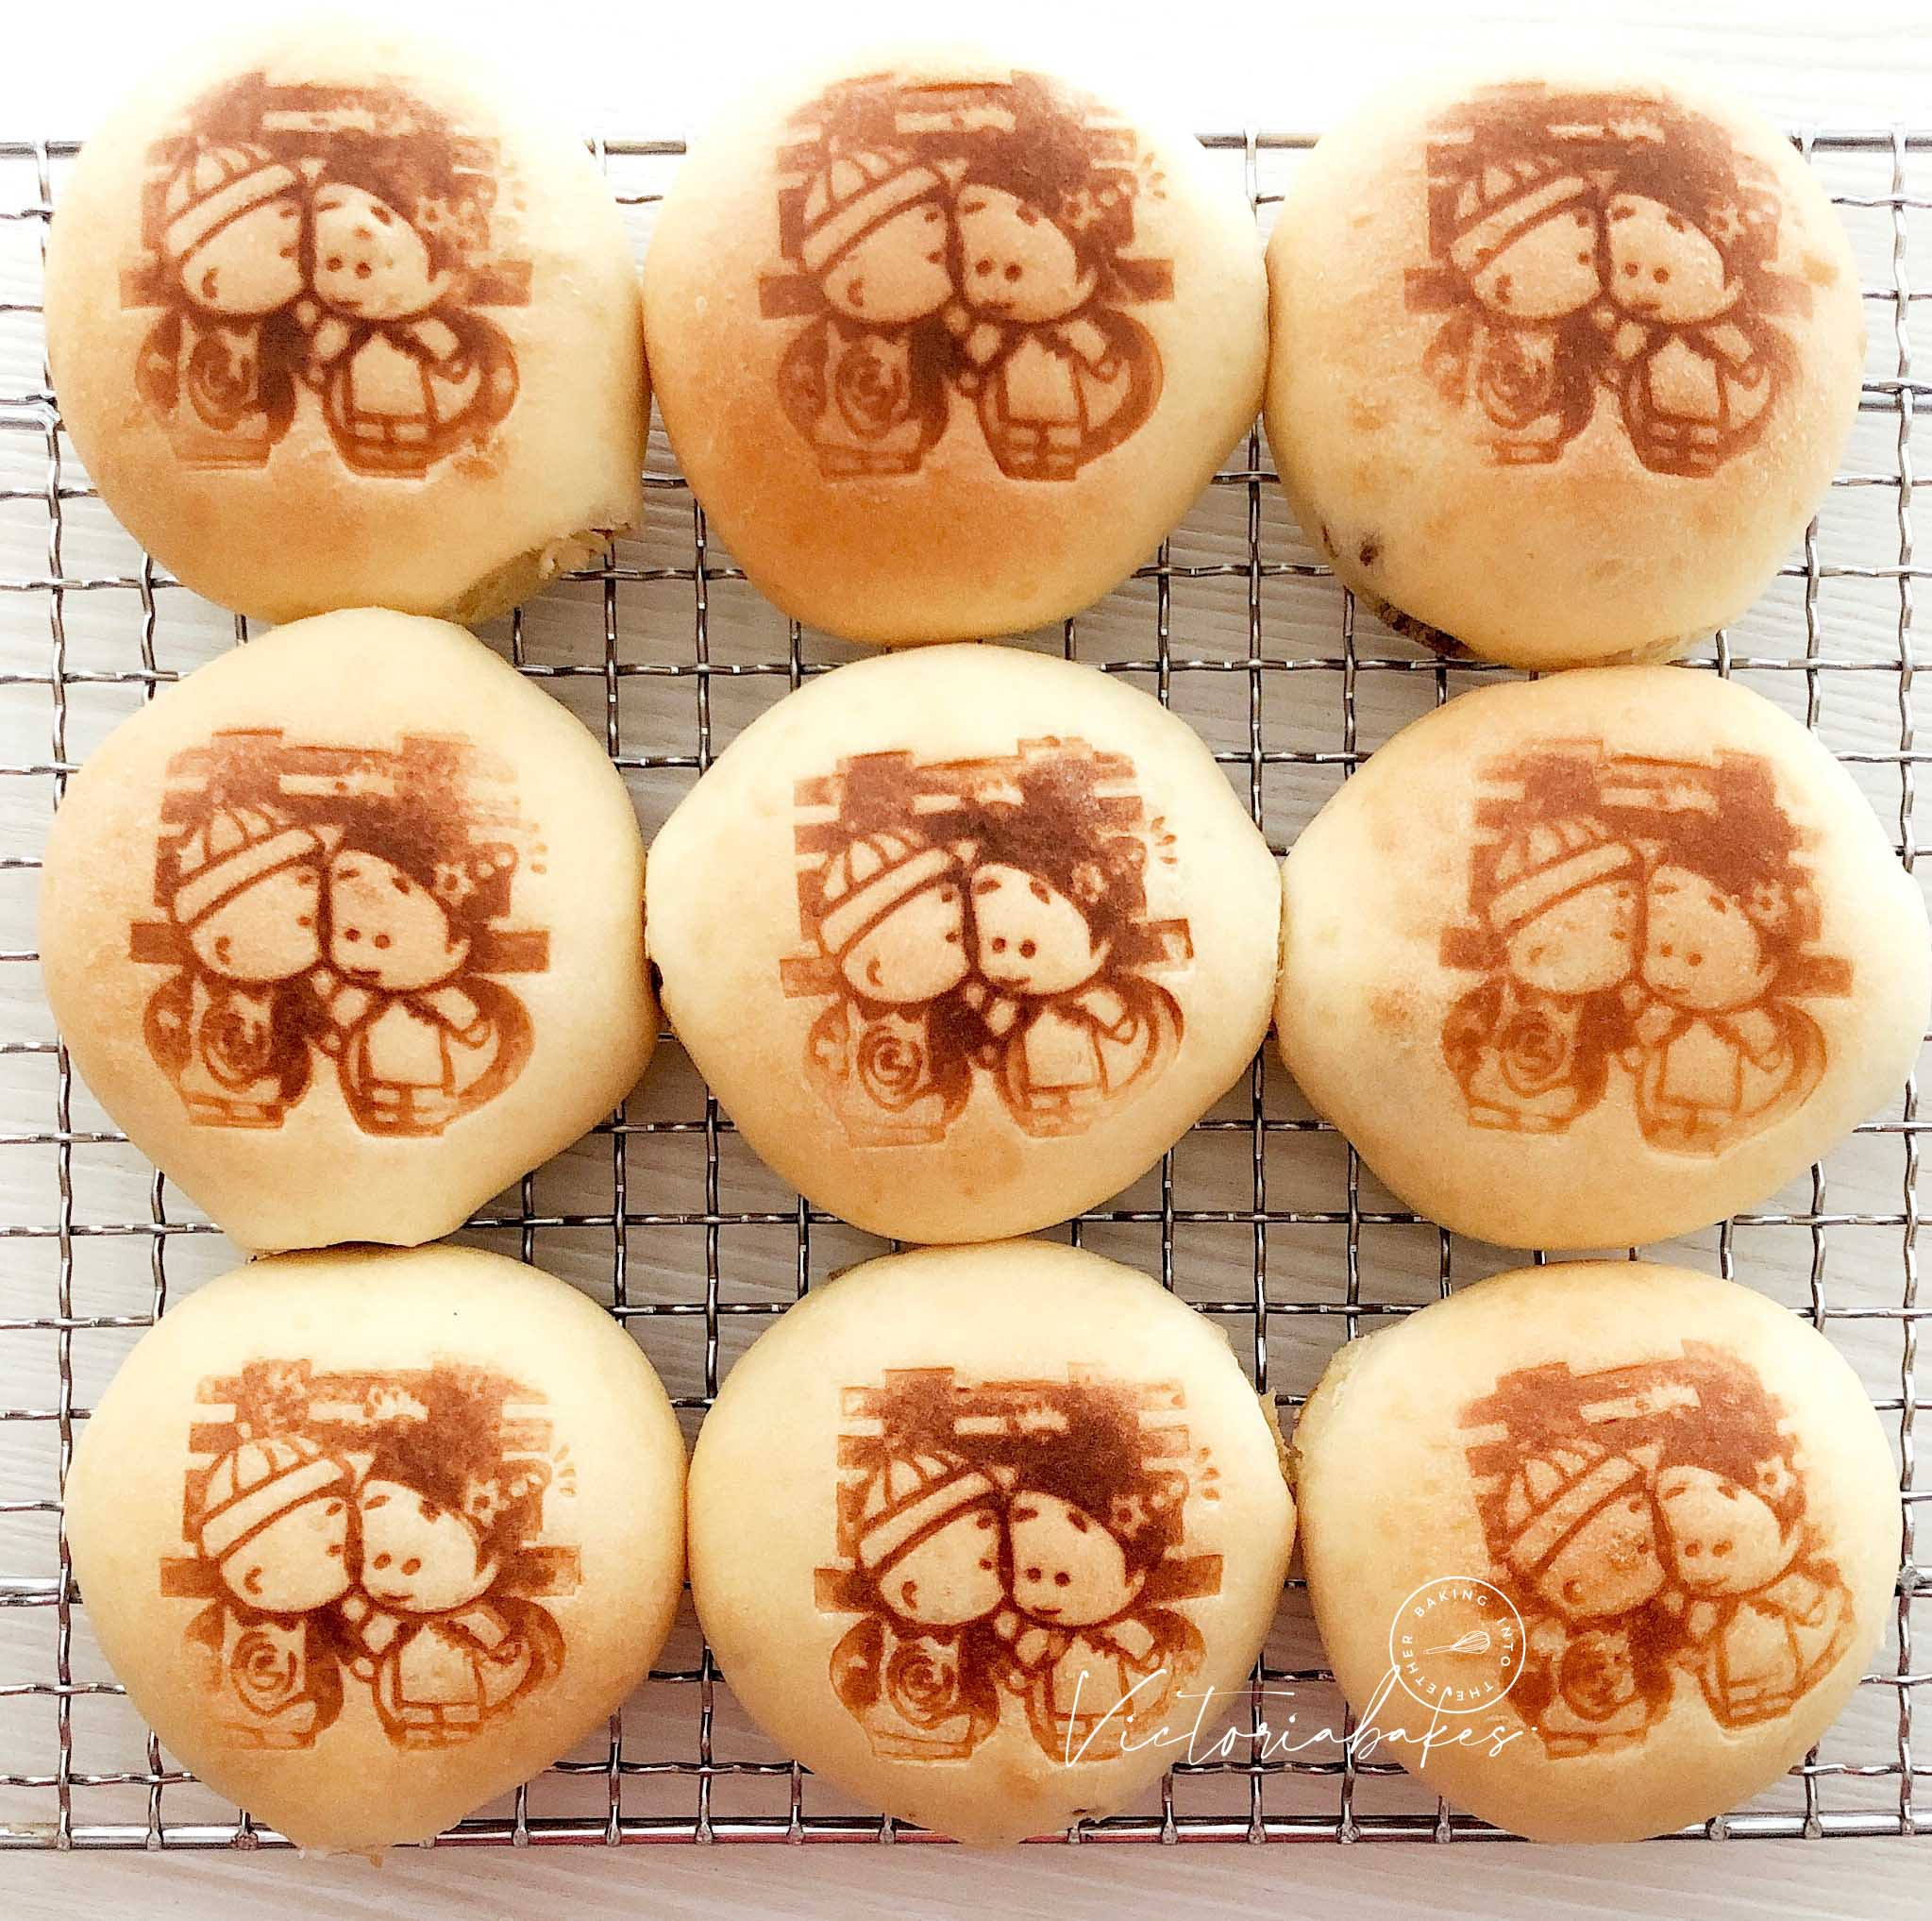 cantonese teahouse baked char siew buns ~ highly recommended 广式茶楼叉烧餐包~ 强推